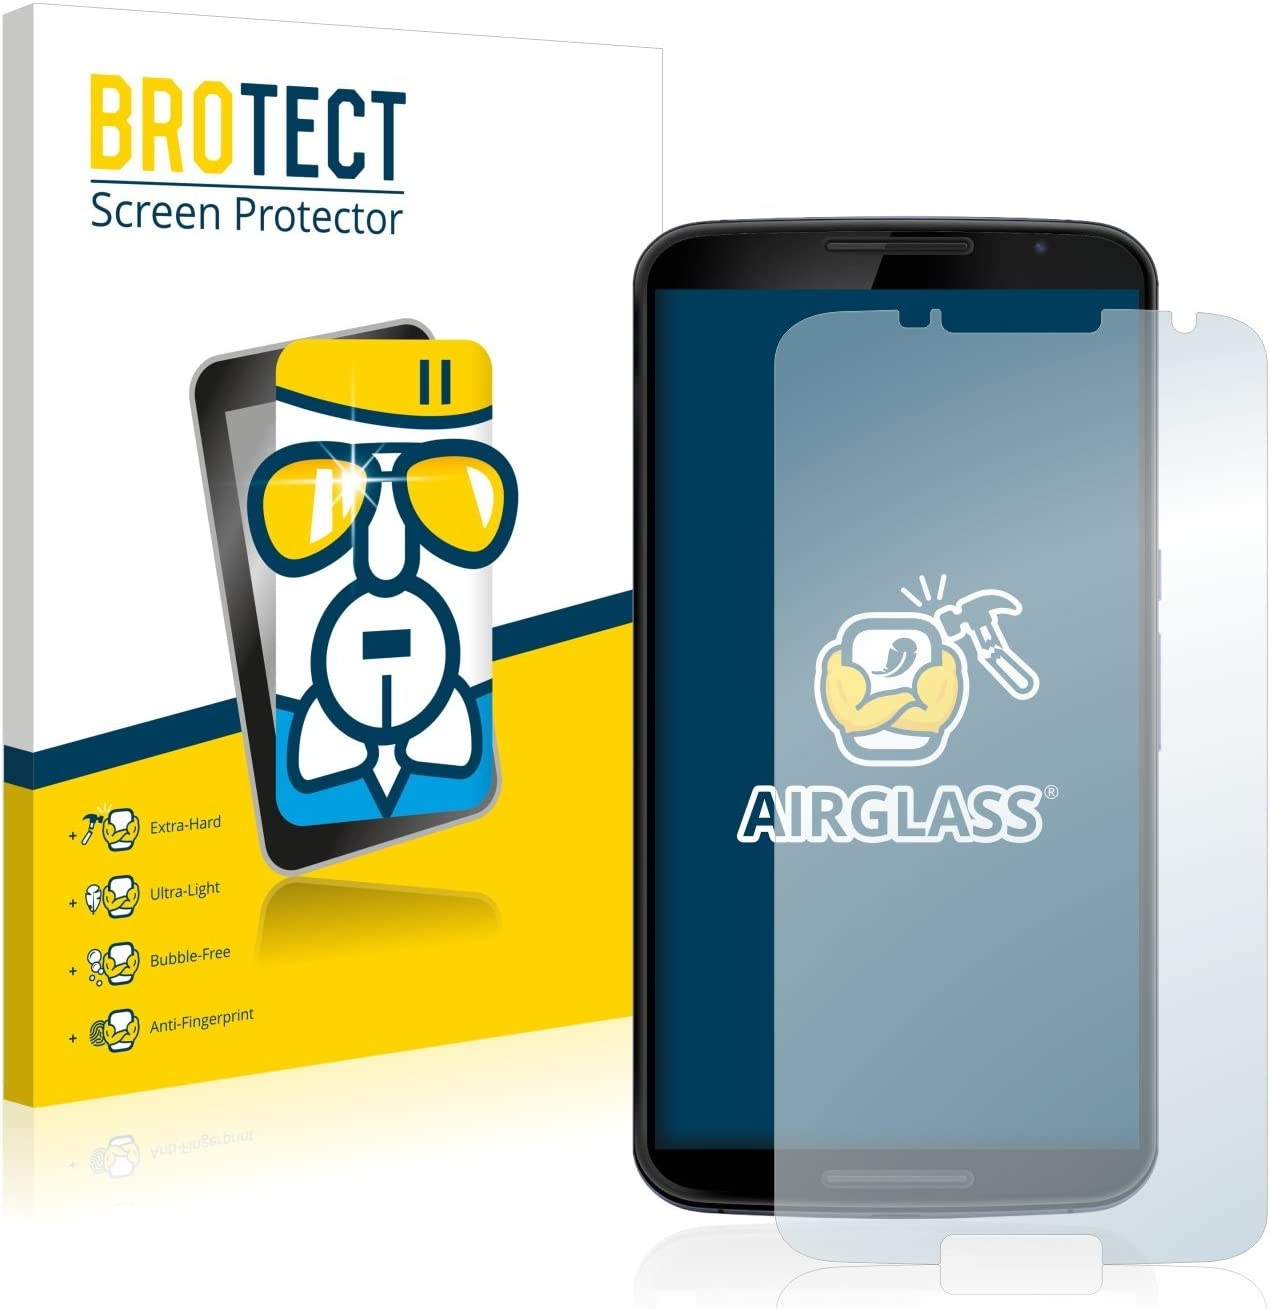 Screen Guard Extra-Hard BROTECT AirGlass Glass Screen Protector for Symbol MC75 3G Ultra-Light